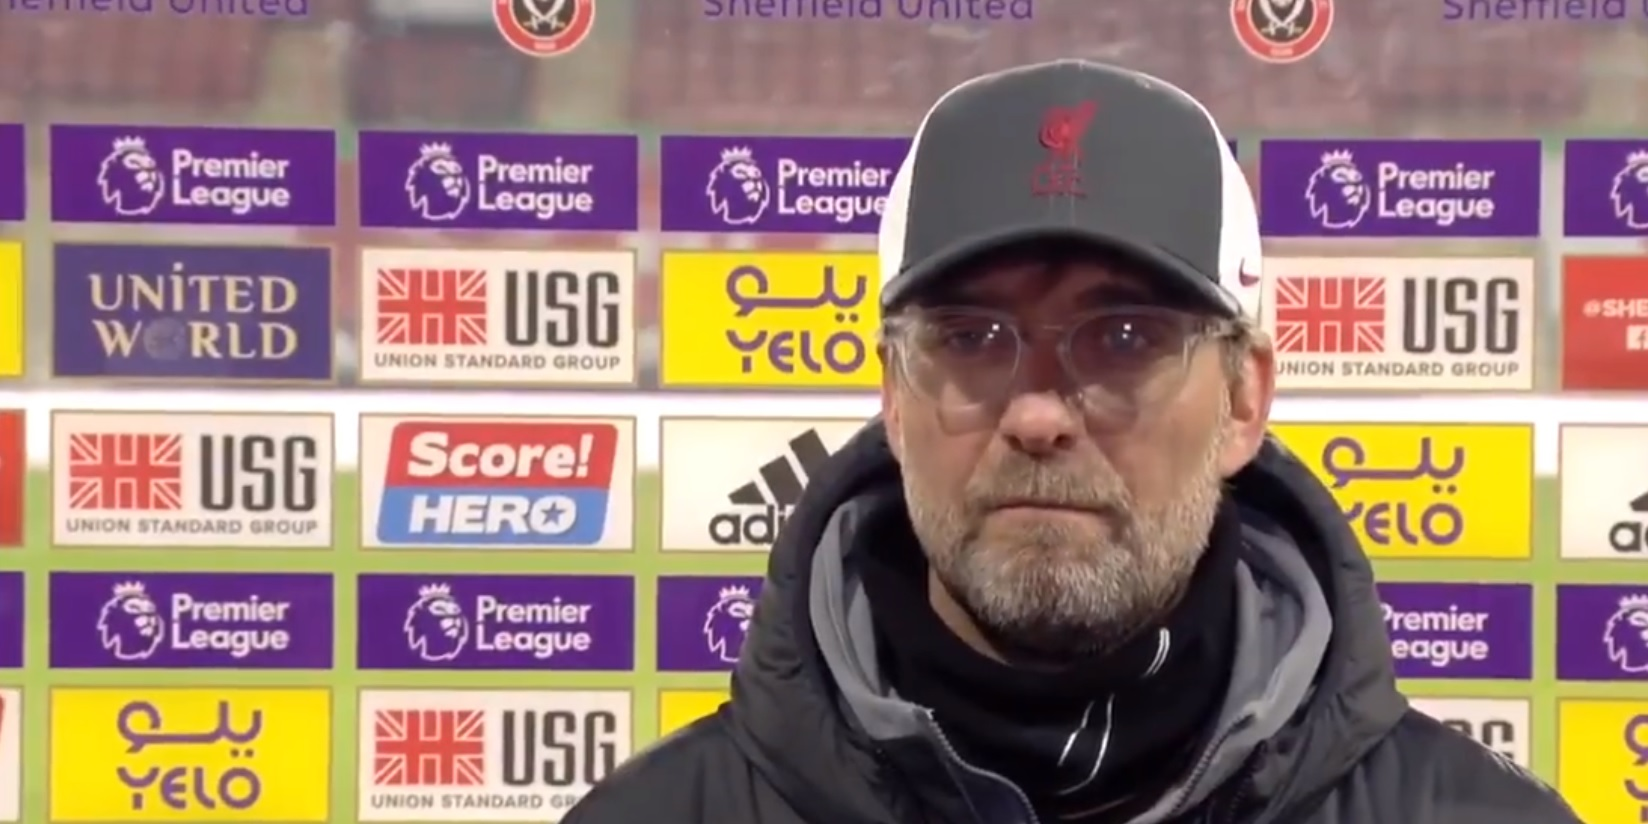 (Video) 'As it counts for him, it counts' – Jurgen Klopp reacts to news of Firmino's lost goal